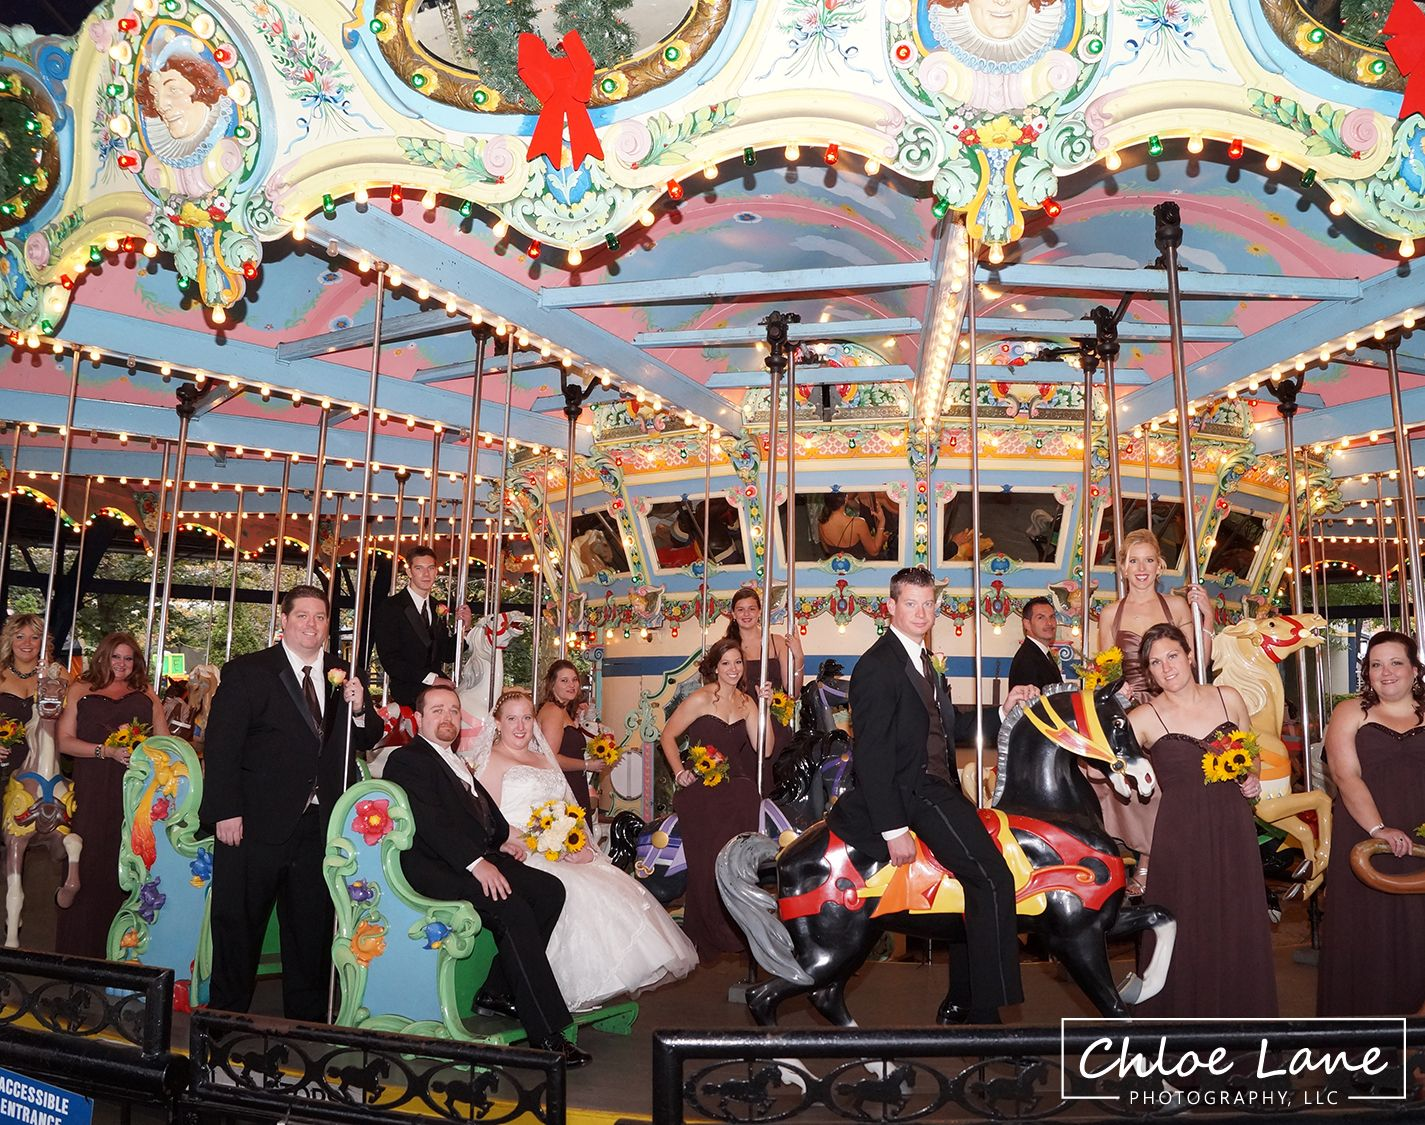 Wedding party riding the merry go round at Kennywood Park in 1425x1125